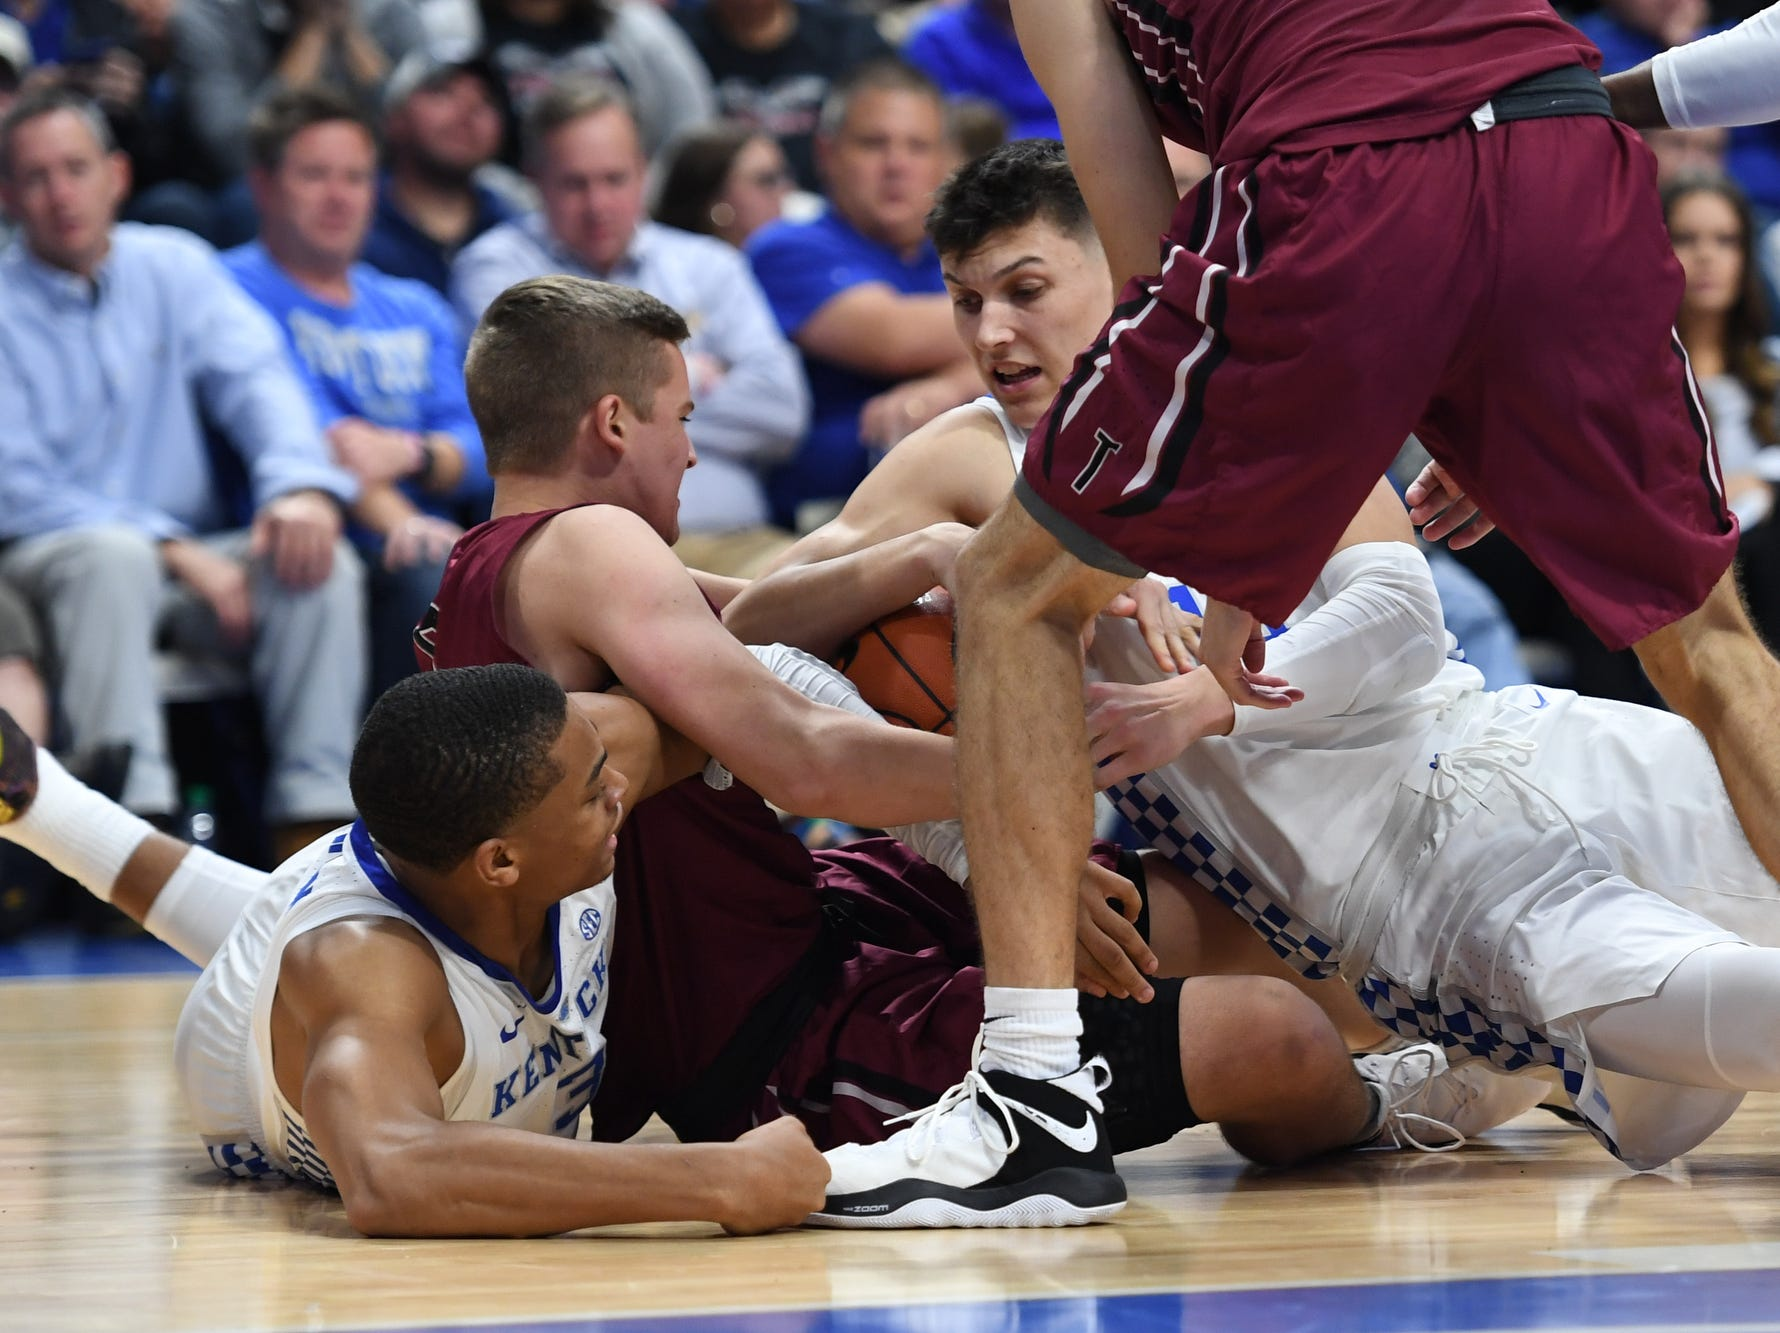 Tyler Herro grabs a loose ball during the University of Kentucky basketball game against Transylvania at Rupp Arena in Lexington on Friday, Oct. 26, 2018.